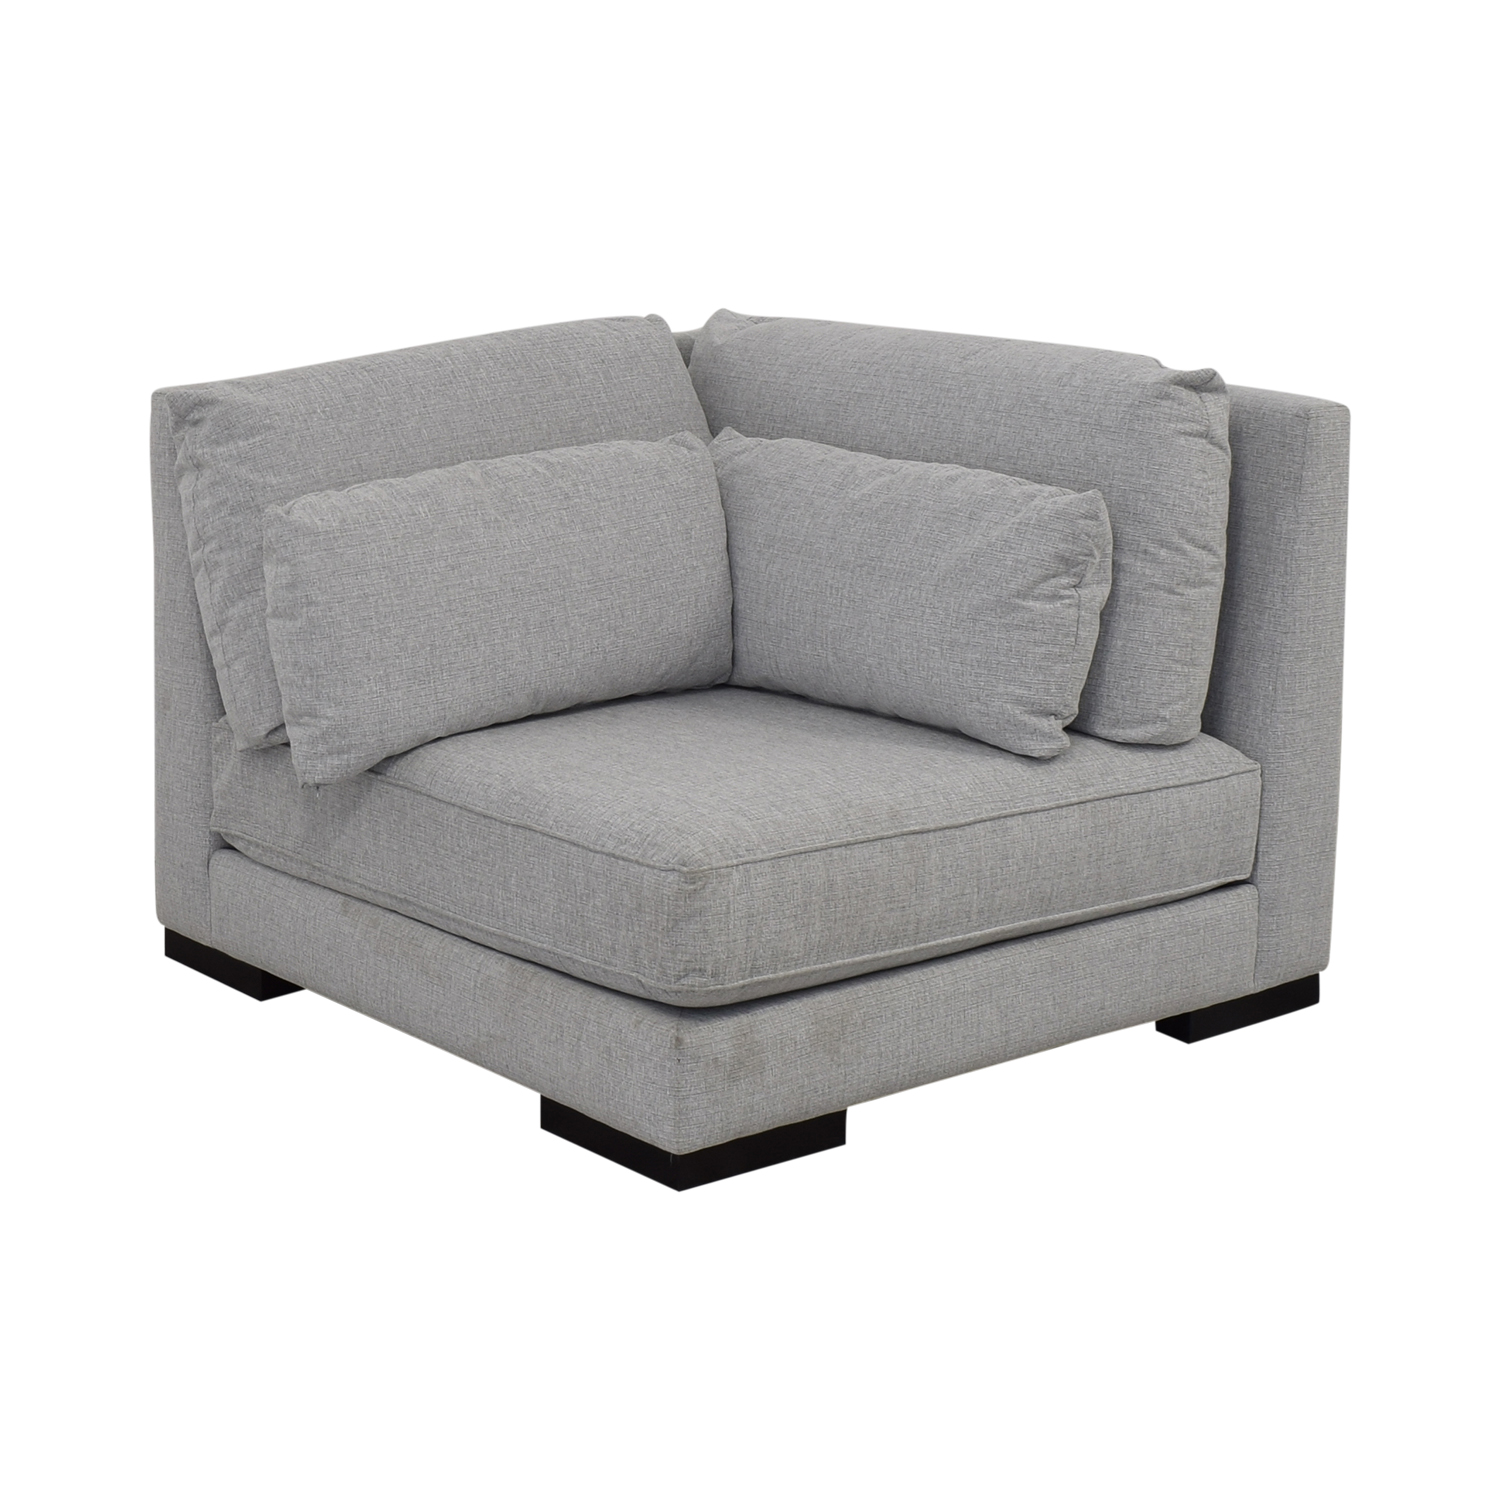 Younger Furniture Younger Furniture Chill Corner Chair discount